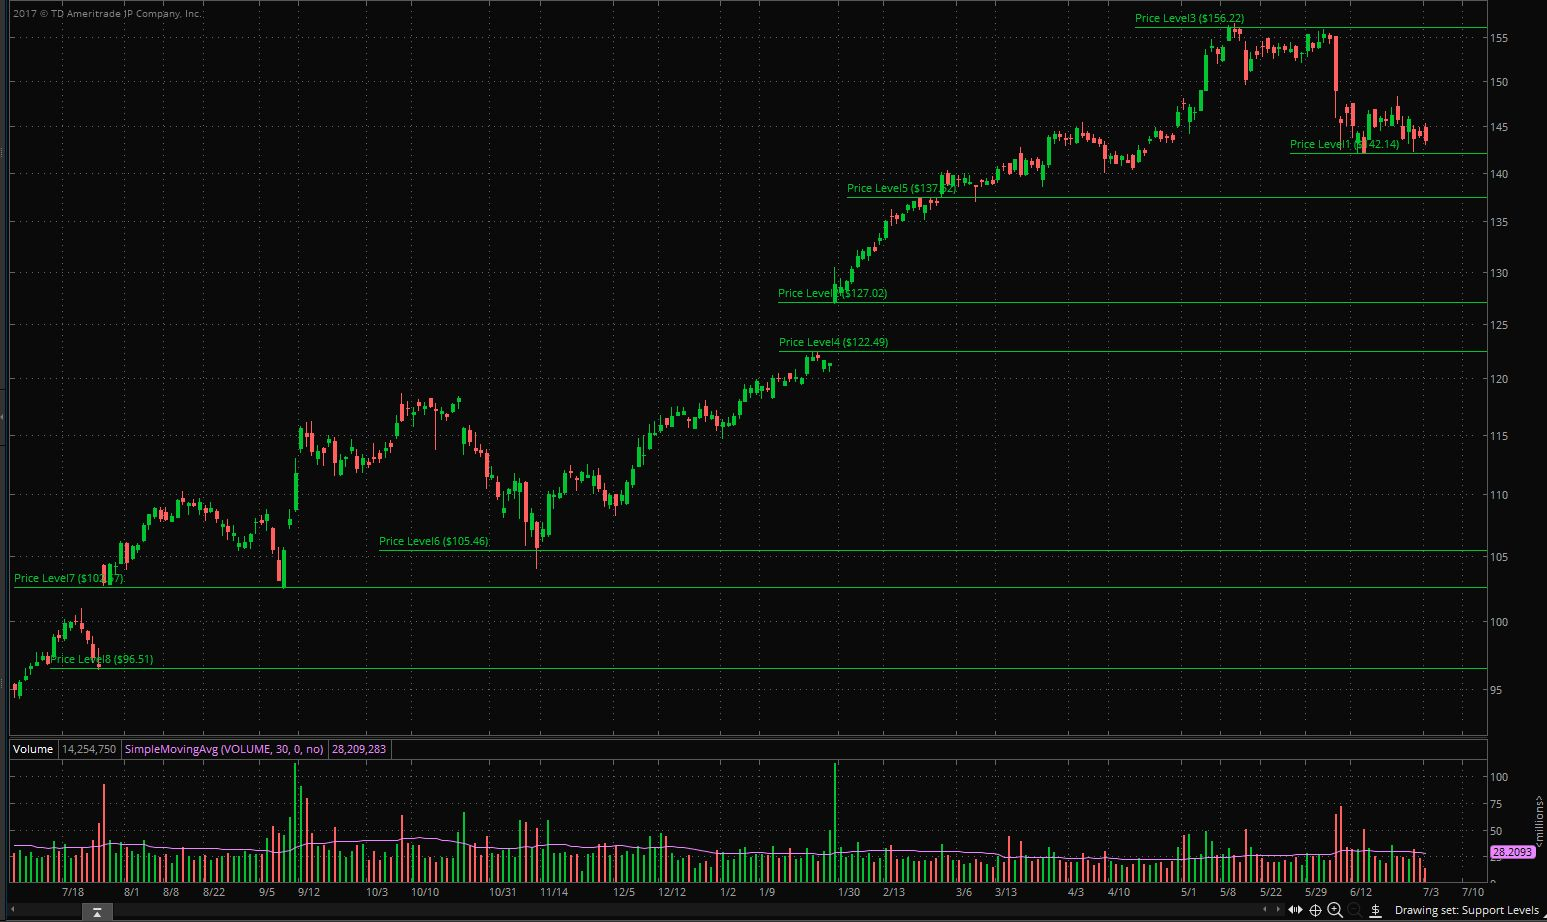 Add Support and Resistance Lines